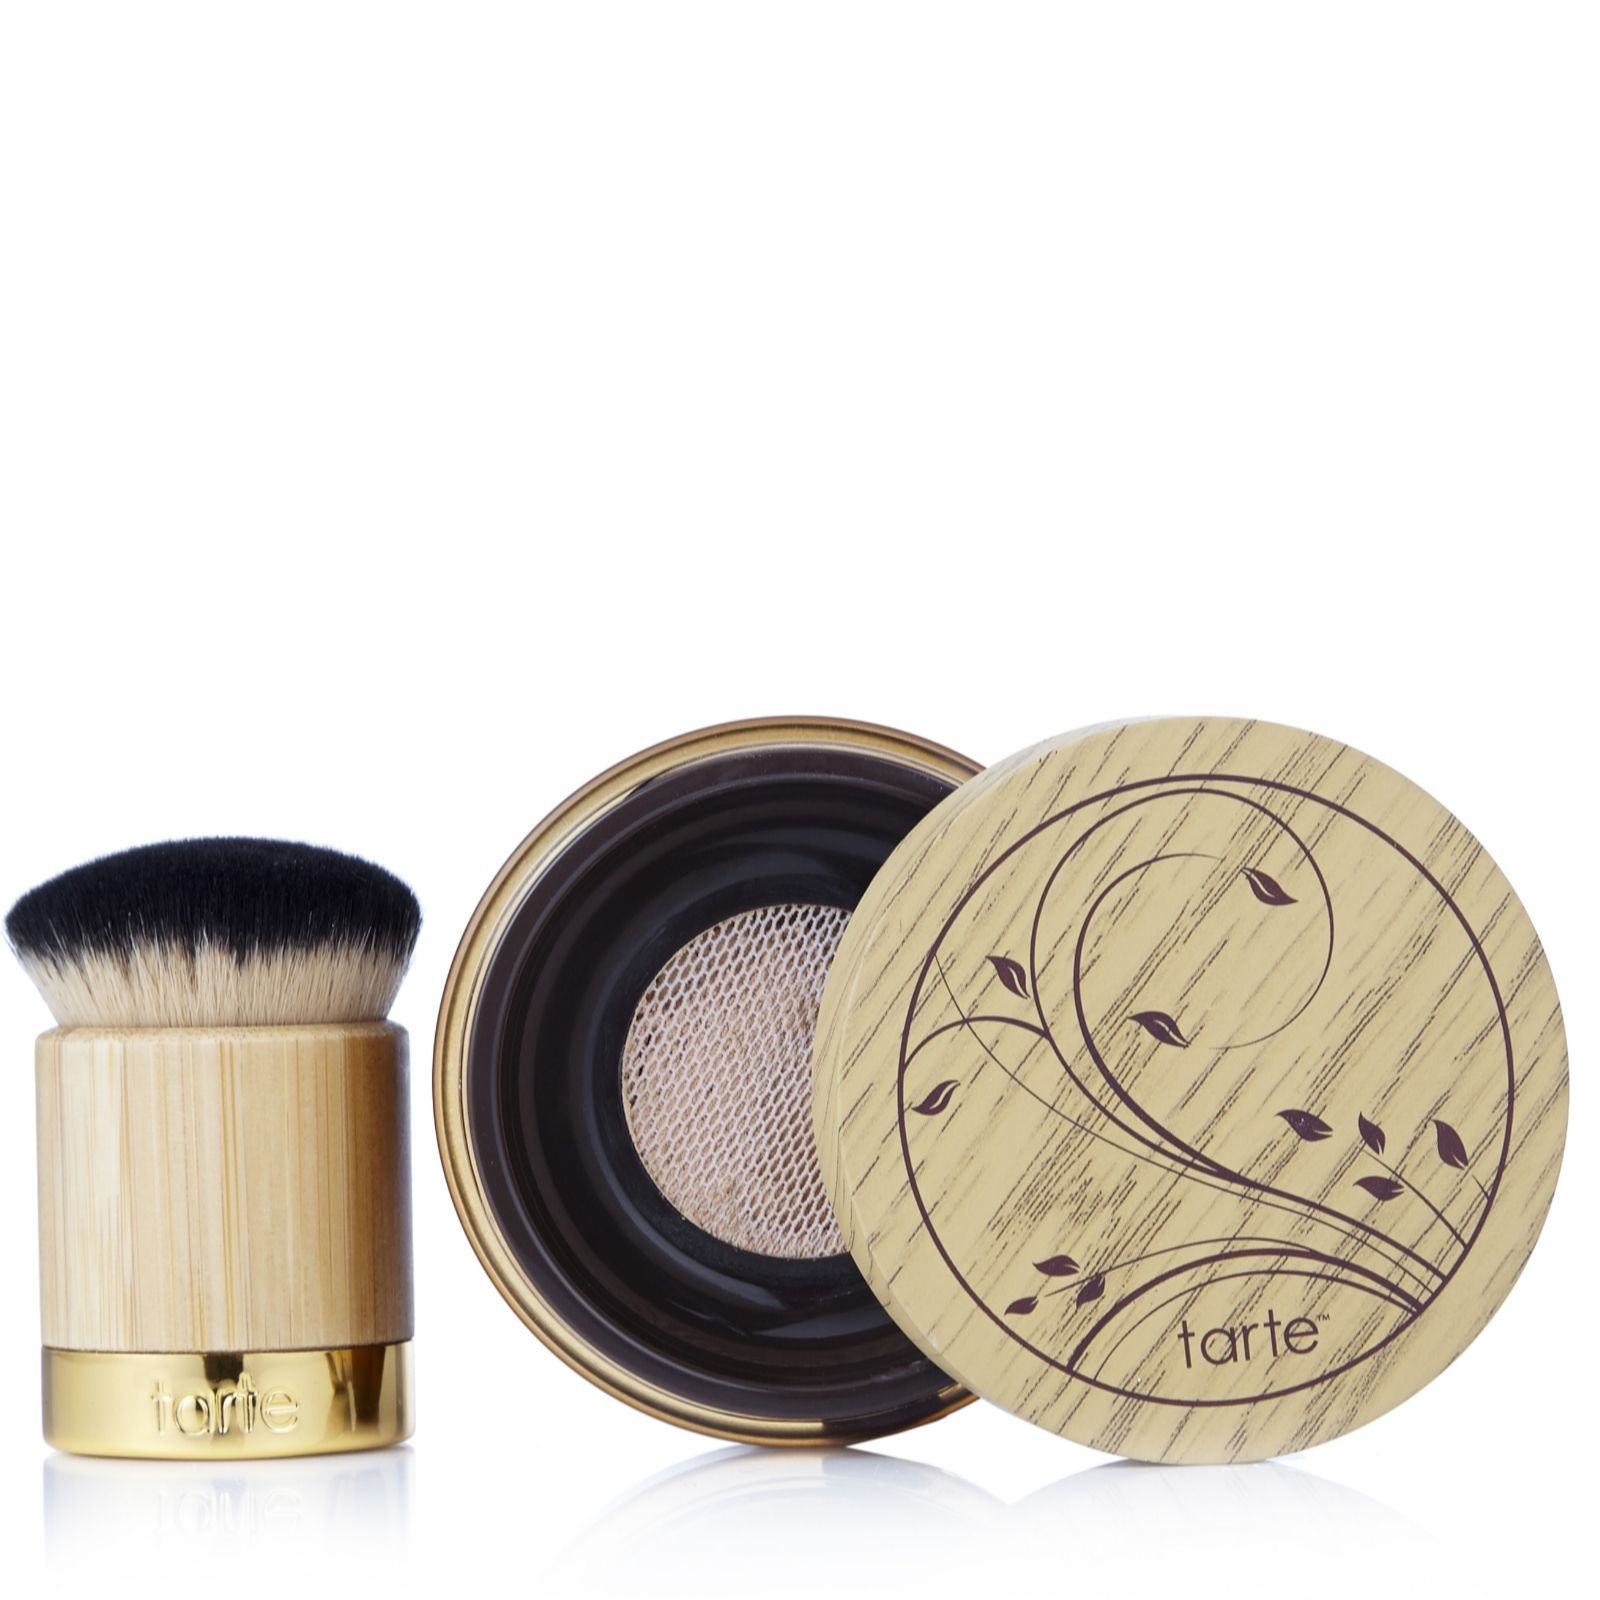 Tarte Amazonian Clay Full Cover Airbrush Powder Foundation